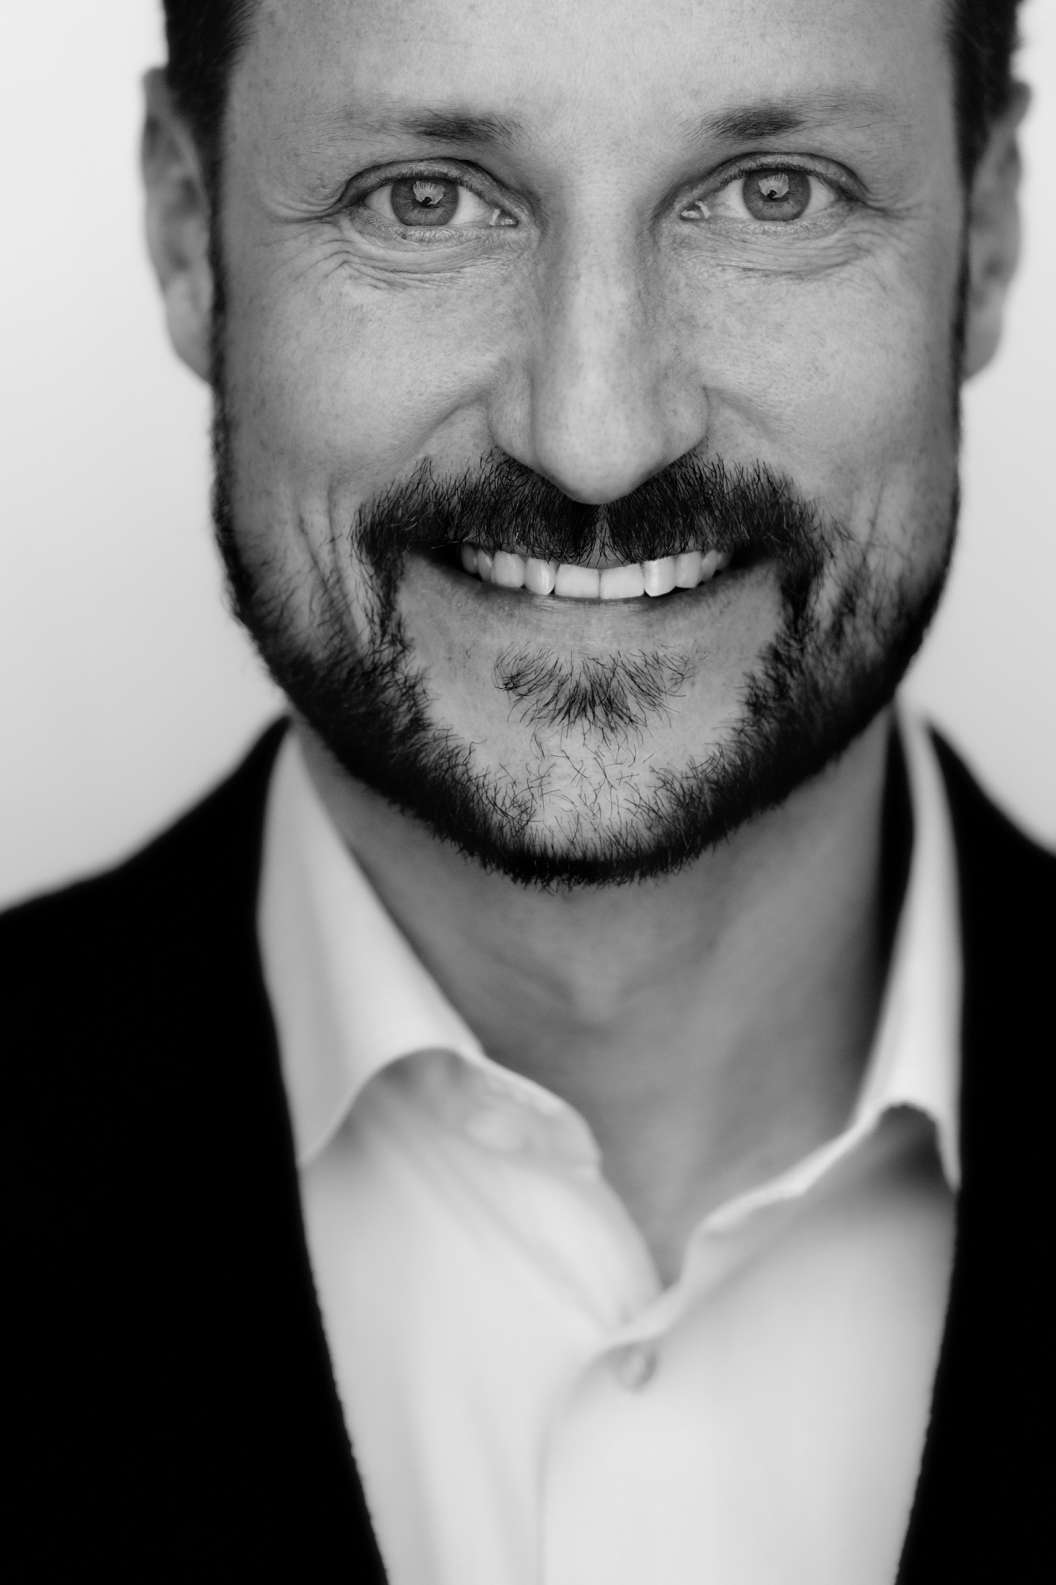 HRH Crown Prince Haakon of Norway for Kronprinsparets Fond/TRY